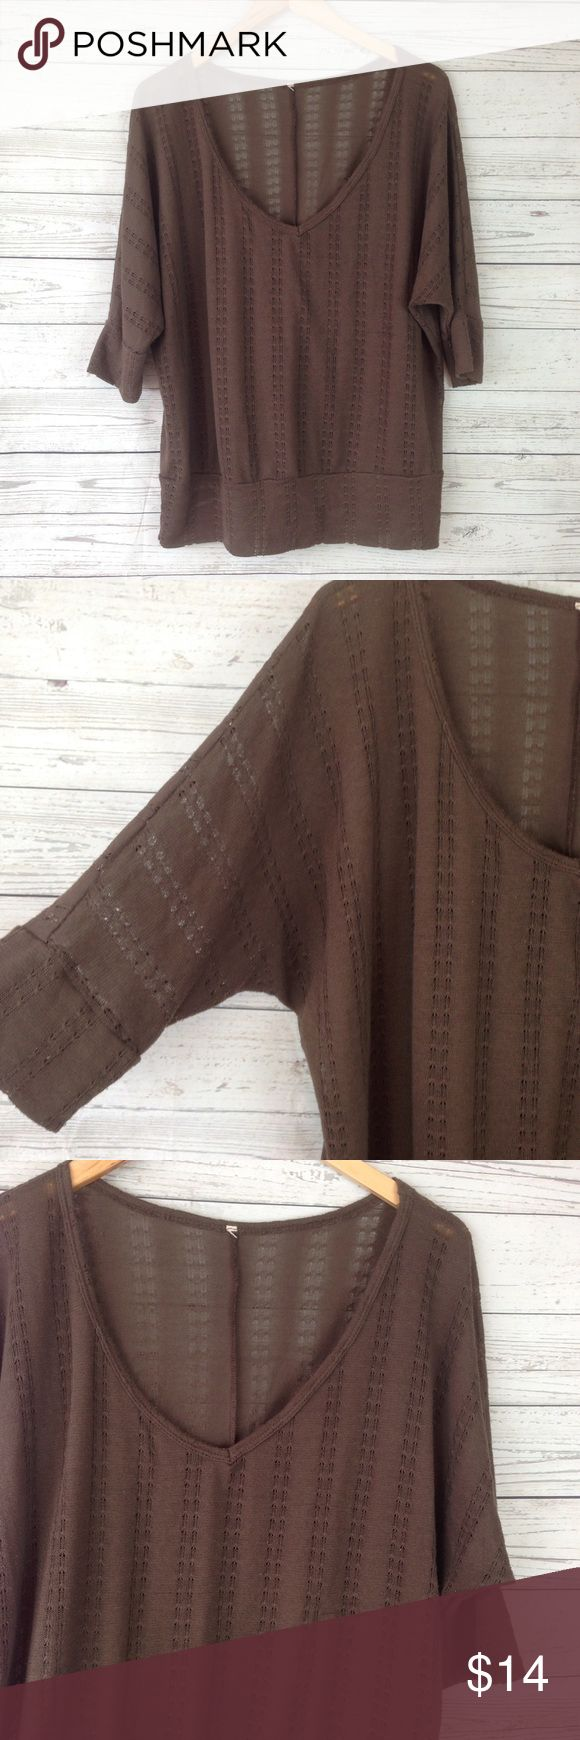 """Dolman knit batwing brown XL Shirt top blouse T7 measurementswhen flat: ~Bust (armpit to armpit) open waist 19"""" ~length (shoulder down side) 25""""  size XL  has stretch!  light weight  has some piling from wear still nice and soft!  PLEASE CONTACT ME with any questions orconcerns beforeor after a purchase! i am here to help! :) no tag Tops Blouses"""